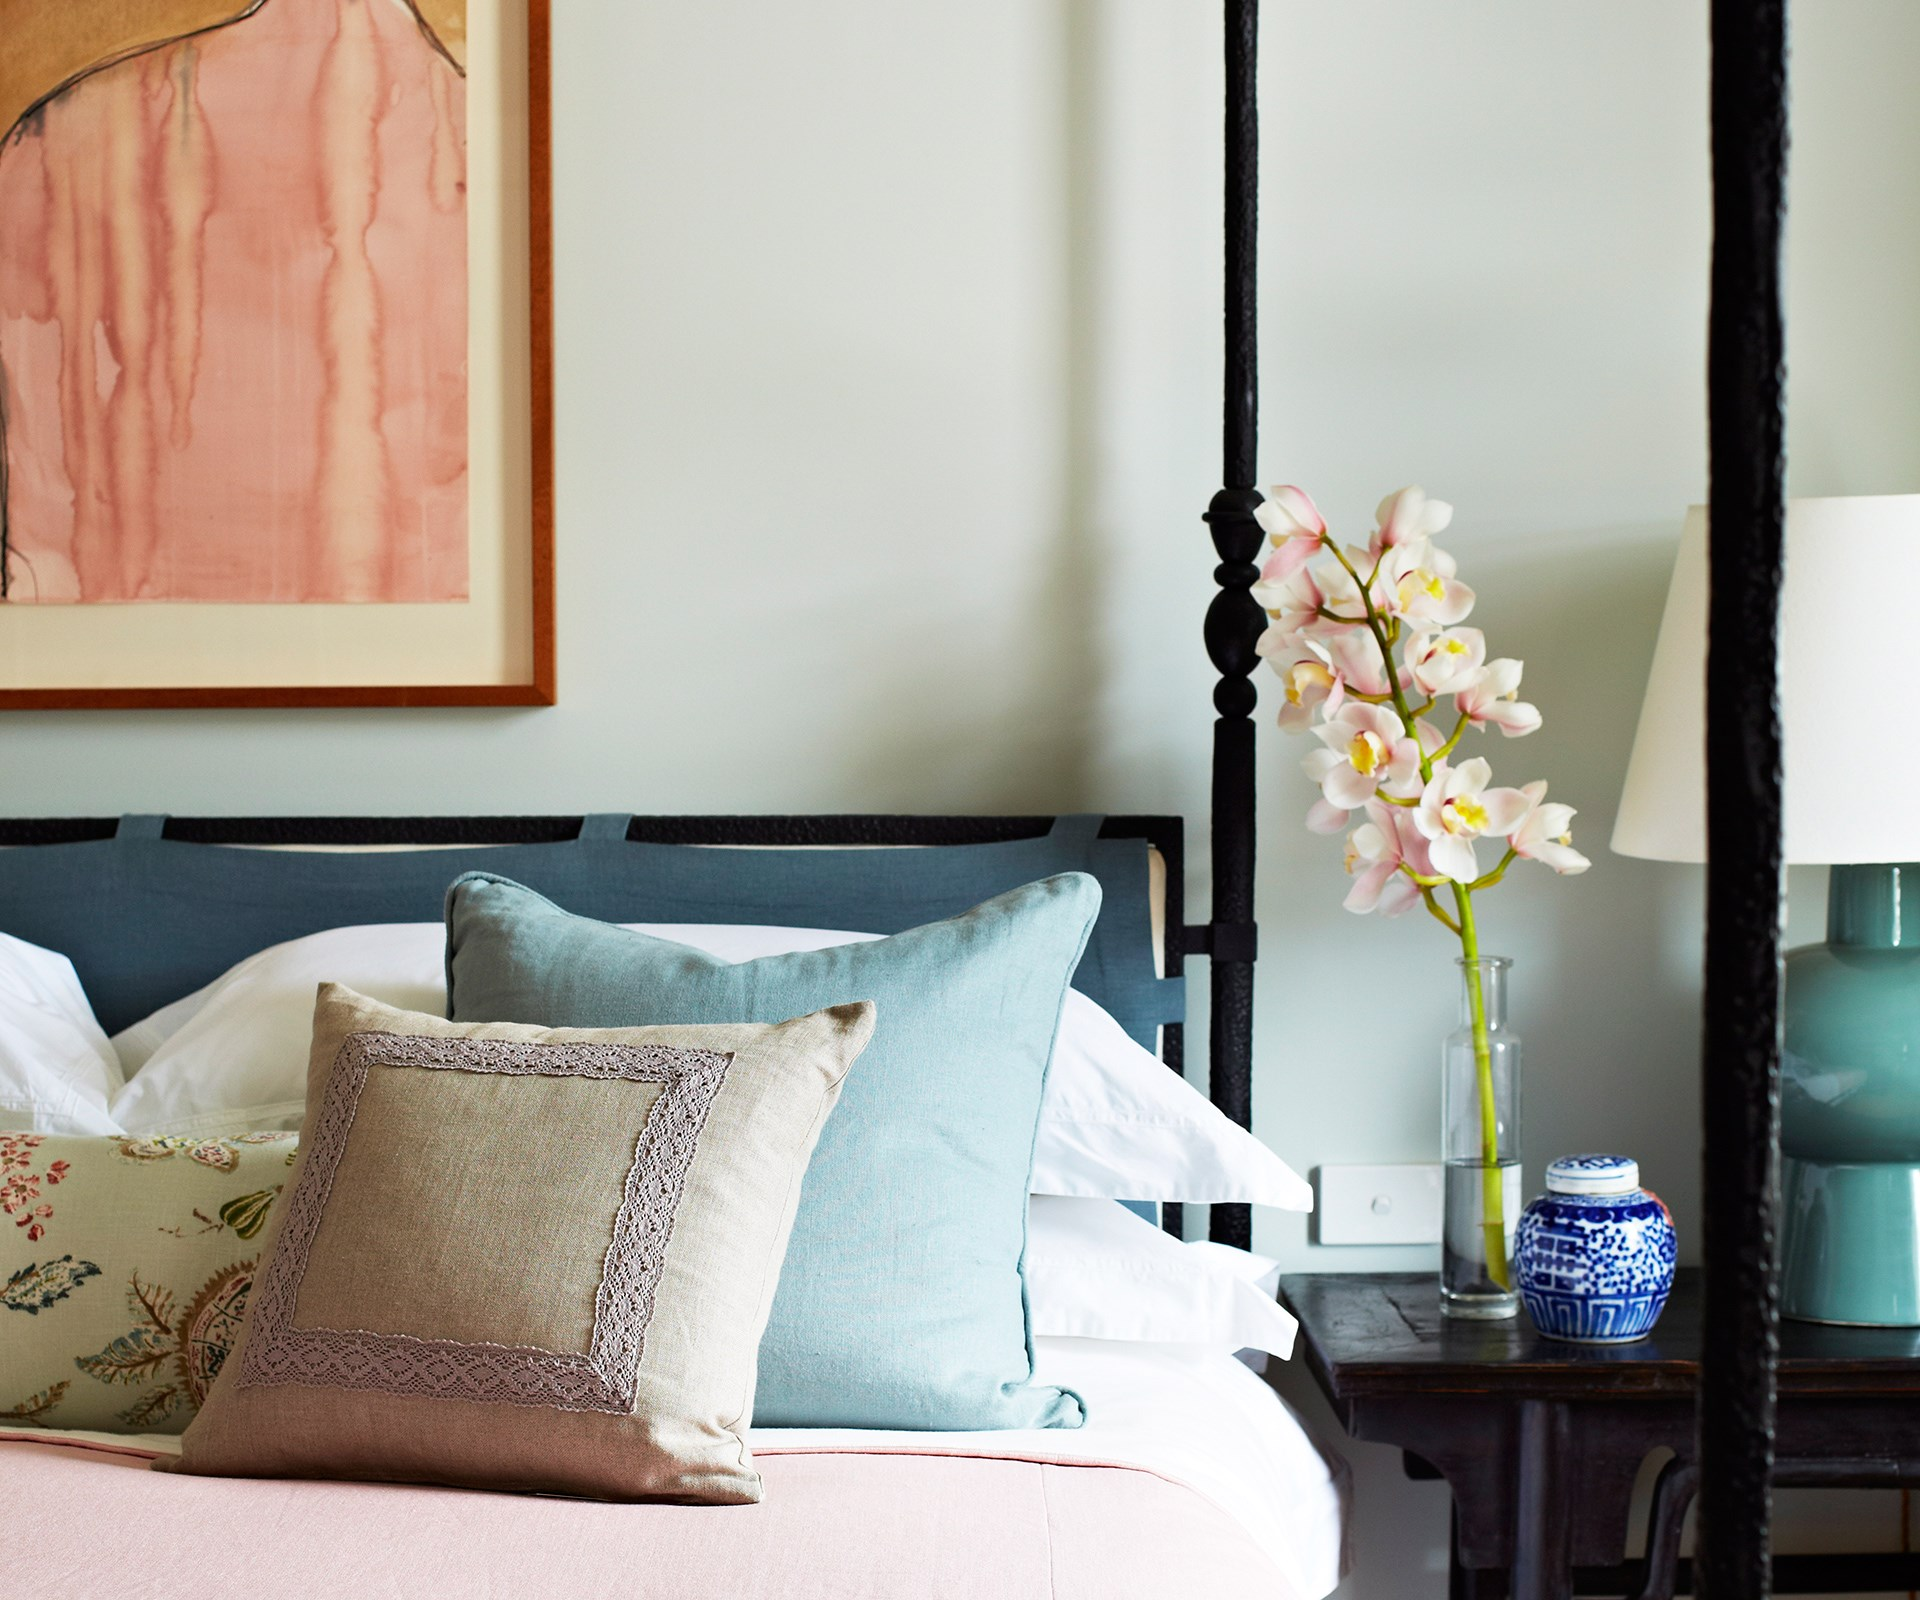 """Turn your spare room into the [perfect guest bedroom](http://www.homestolove.com.au/7-shortcuts-to-create-the-perfect-guest-bedroom-1729/?utm_campaign=supplier/ target=""""_blank"""") that will wow guests. Photo: John Paul Urizar / *real living*"""